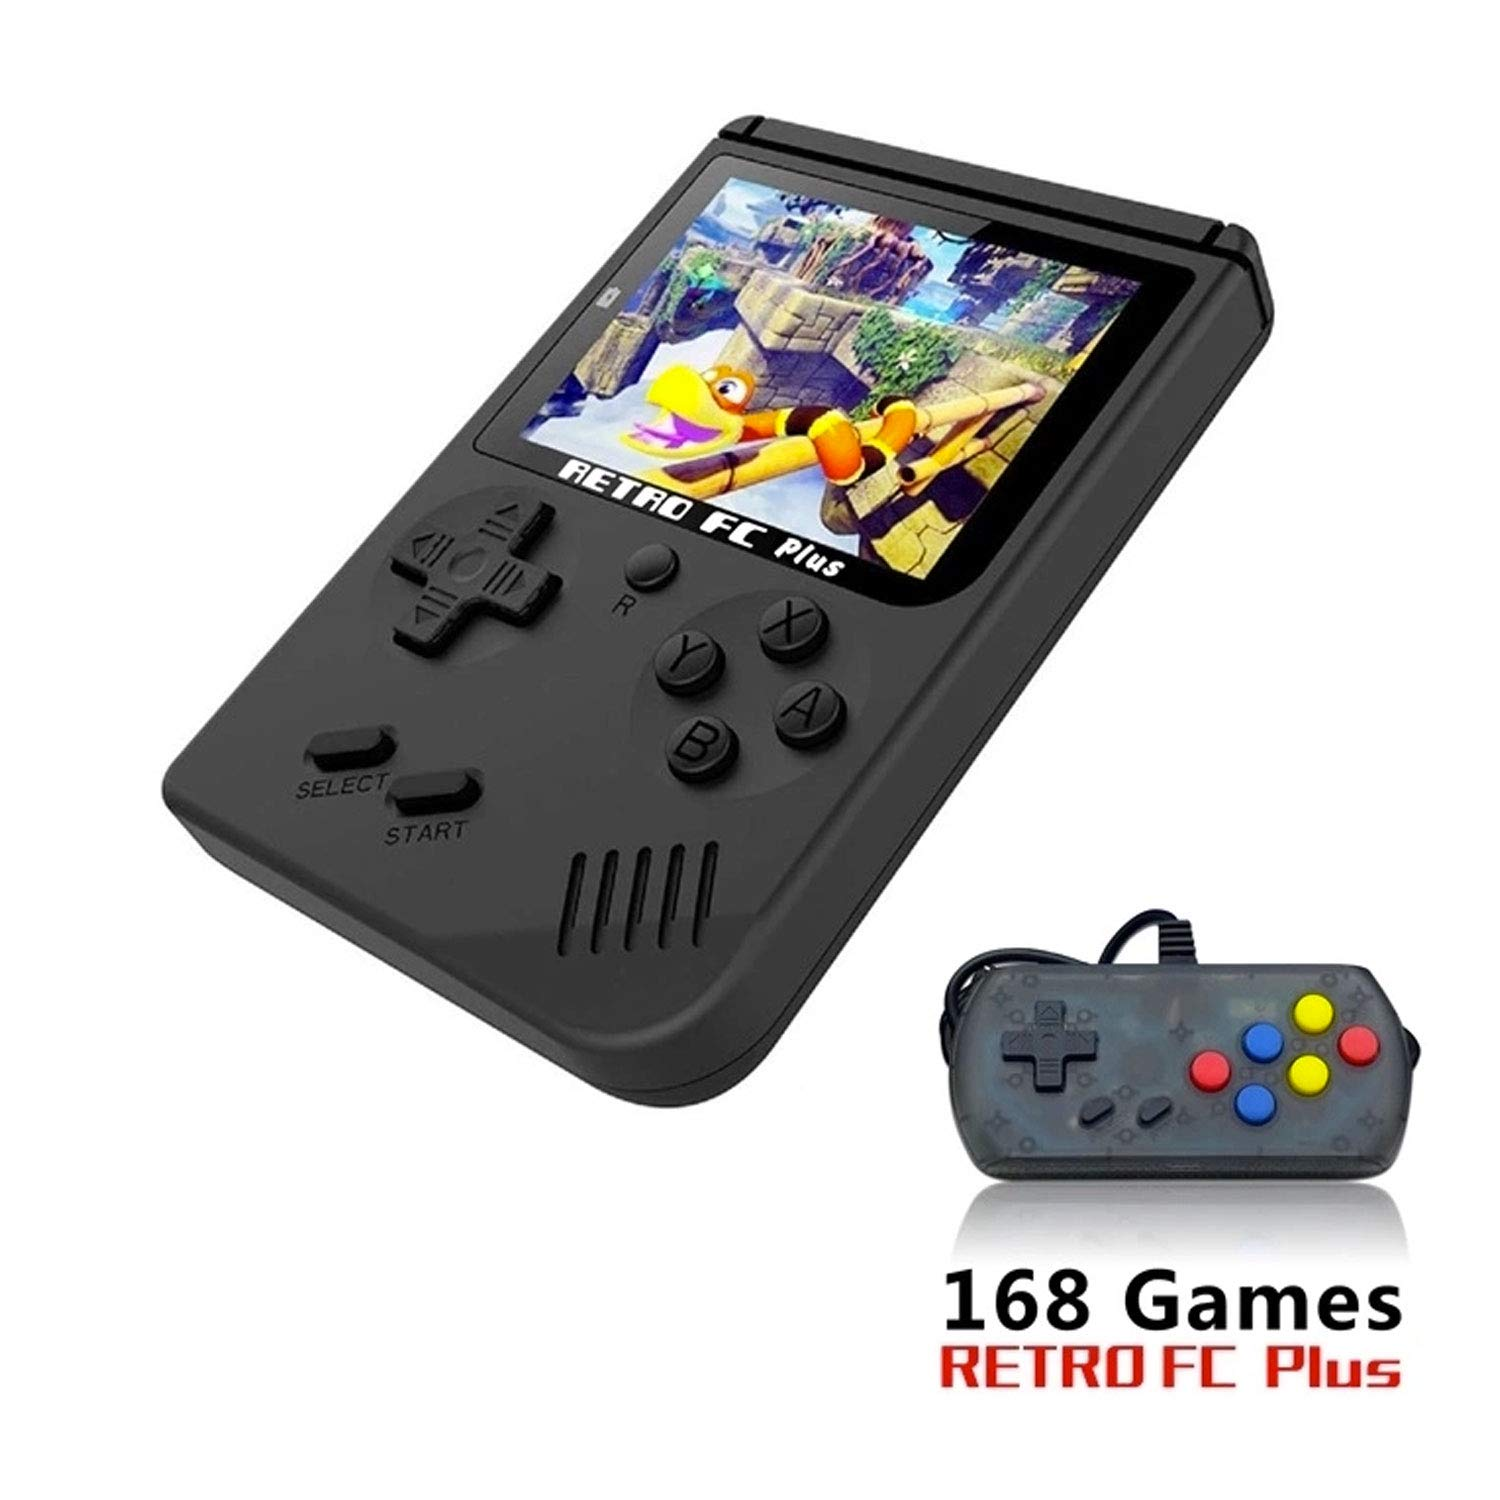 Nidoum 168 Games 8 Bit Handheld Game Console Players 3 Inch Screen Video Game 1 USB Charge & one Joystick Controller ,Birthday Presents for Kids (Black Plus)